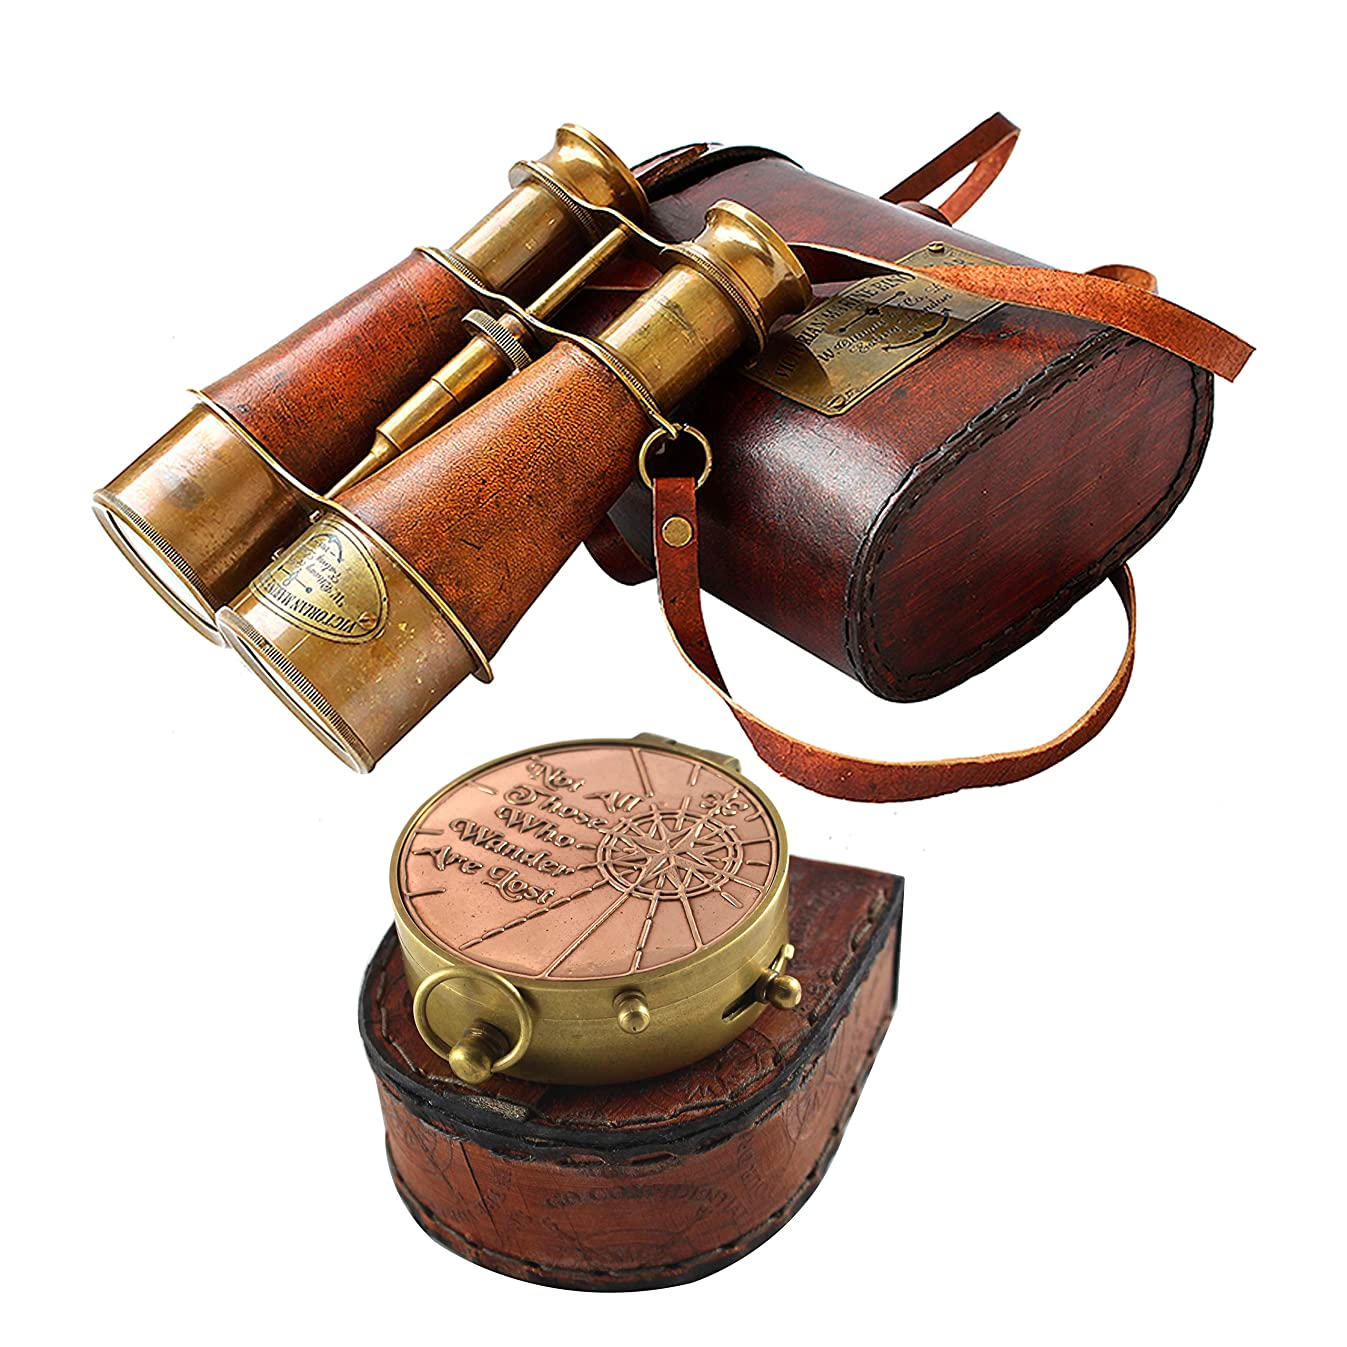 collectiblesBuy Nautical Victorian Marine Binocular Leather Case with Brass Copper Qoute Compass